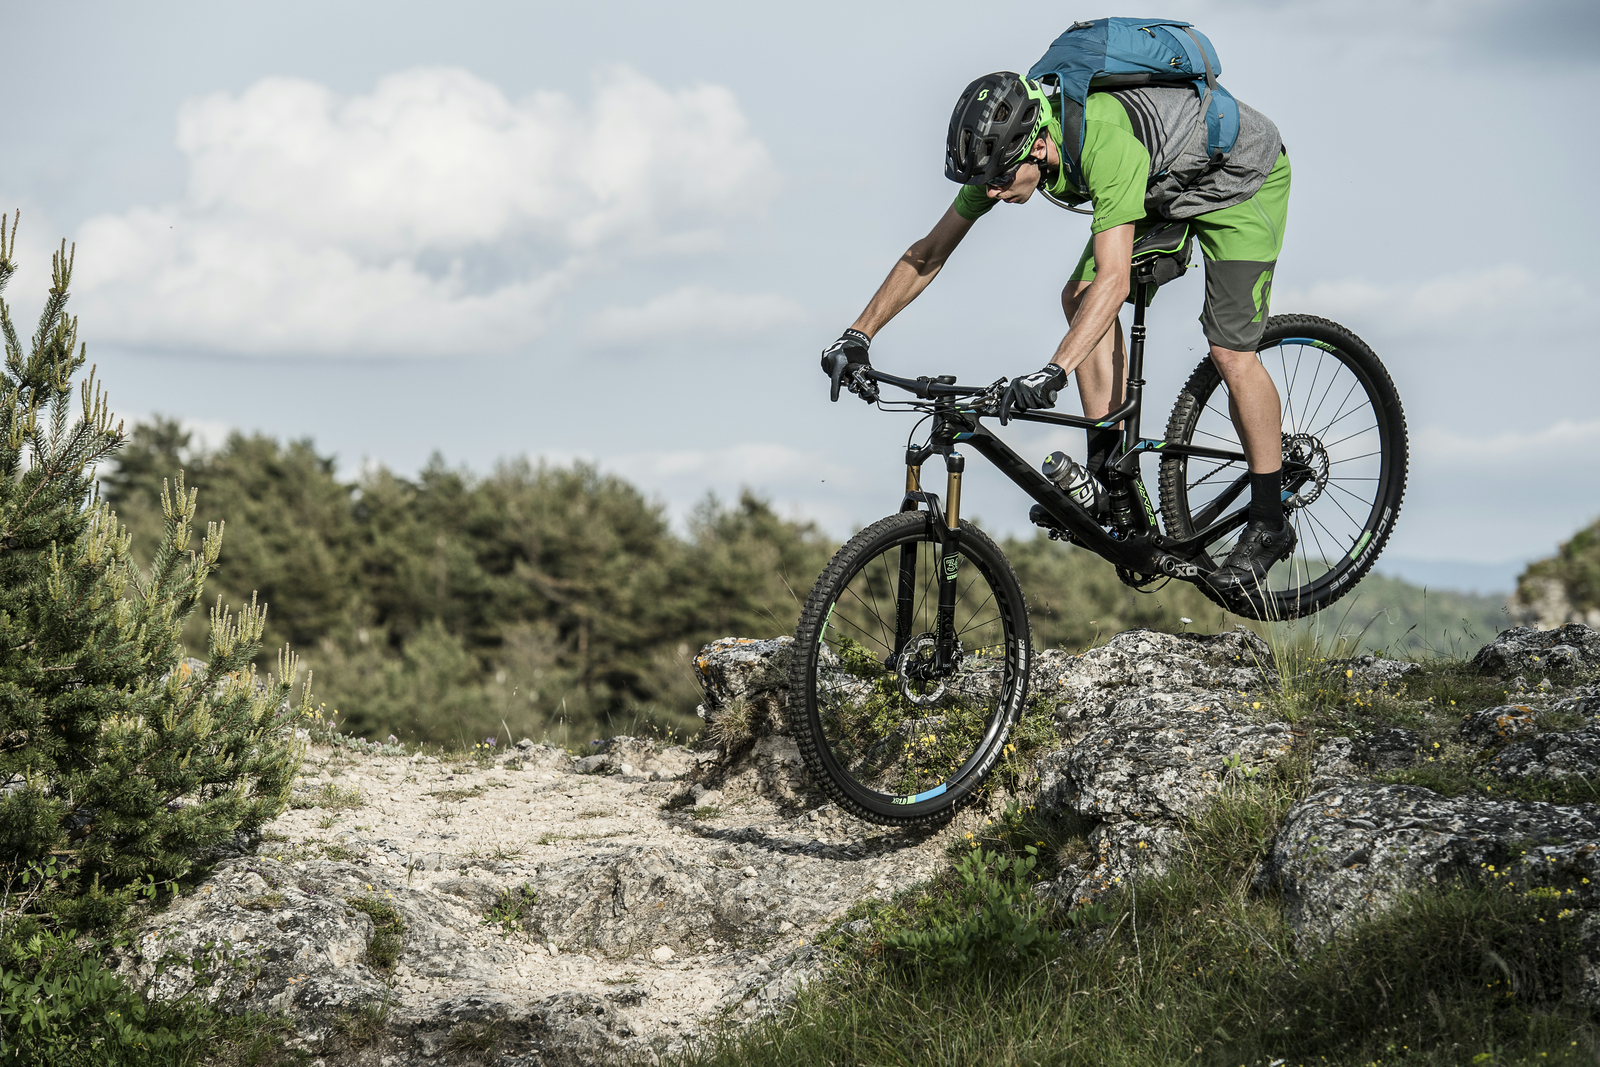 Action_Shooting_Mountainbike_Millau_MY17_ActionImage_2017_SCOTT-Sports_220